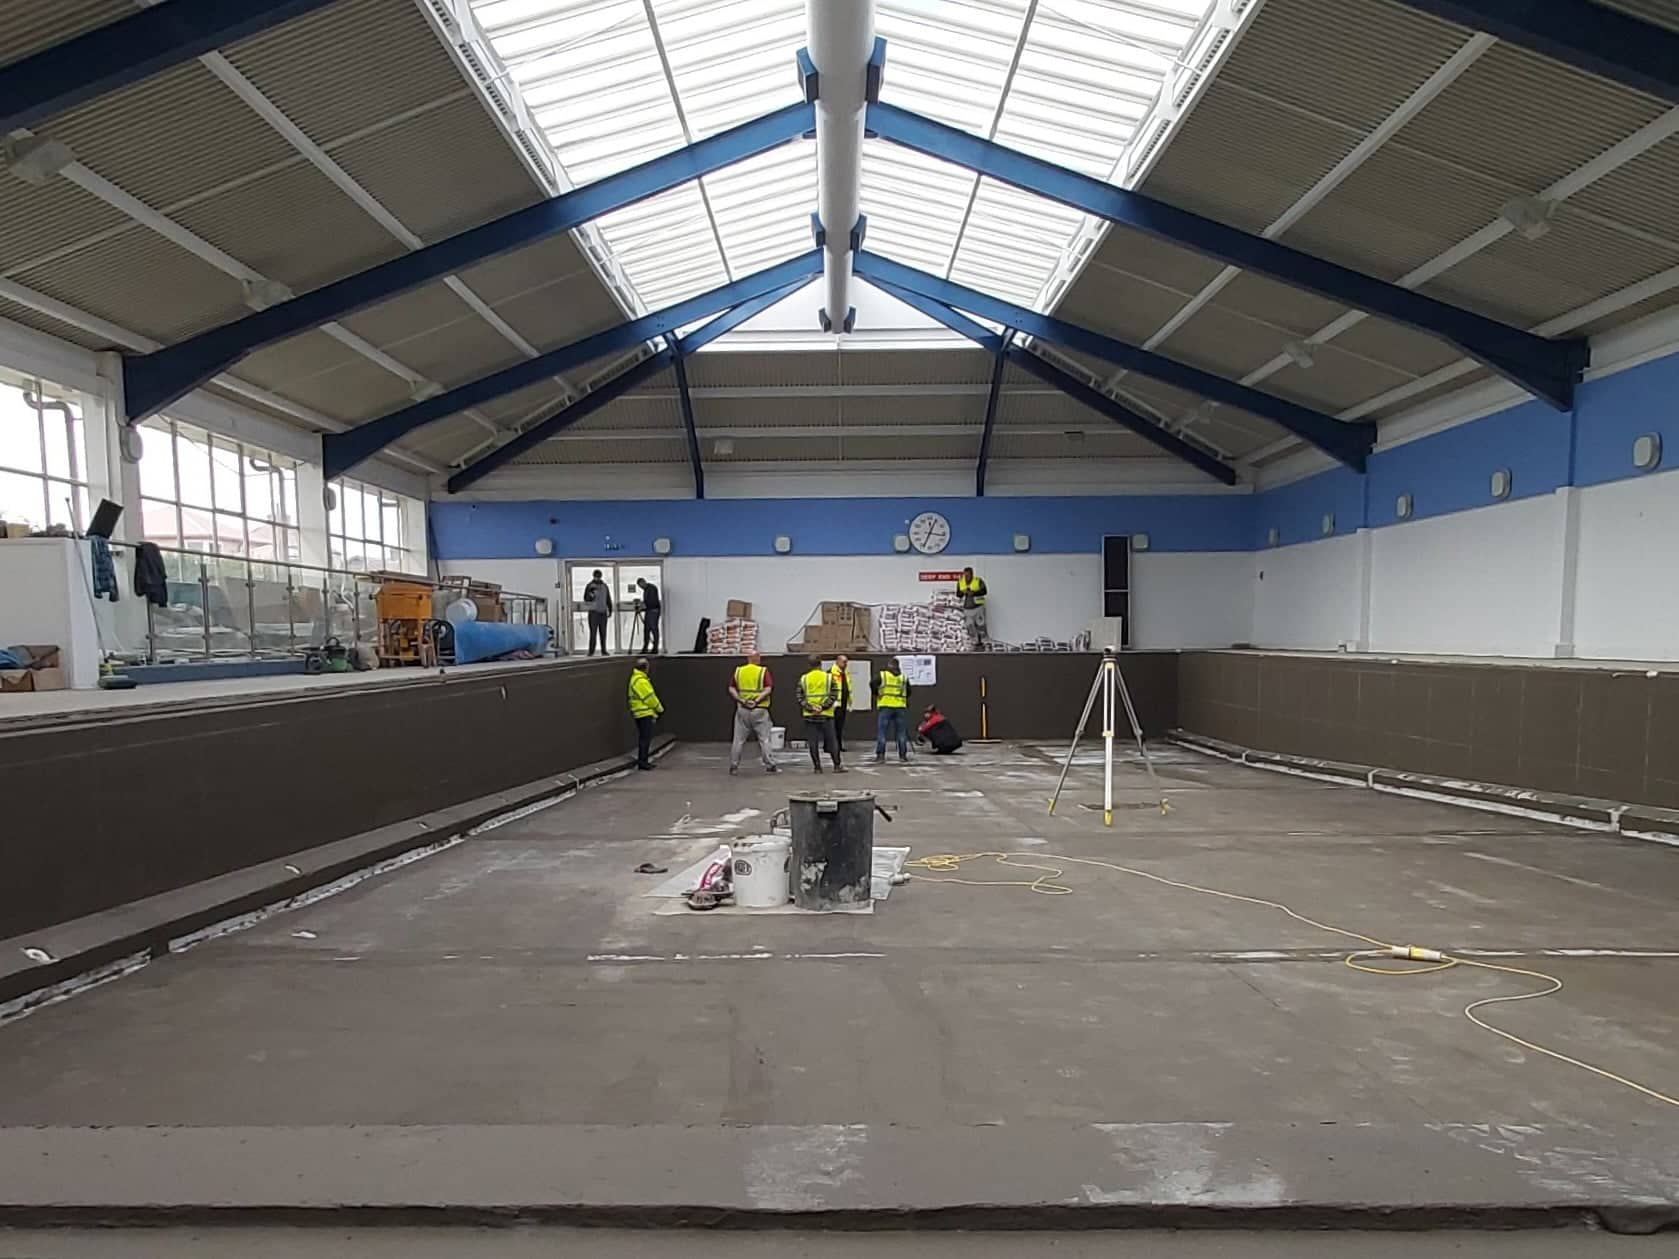 Stanley swimming pool to reopen in May